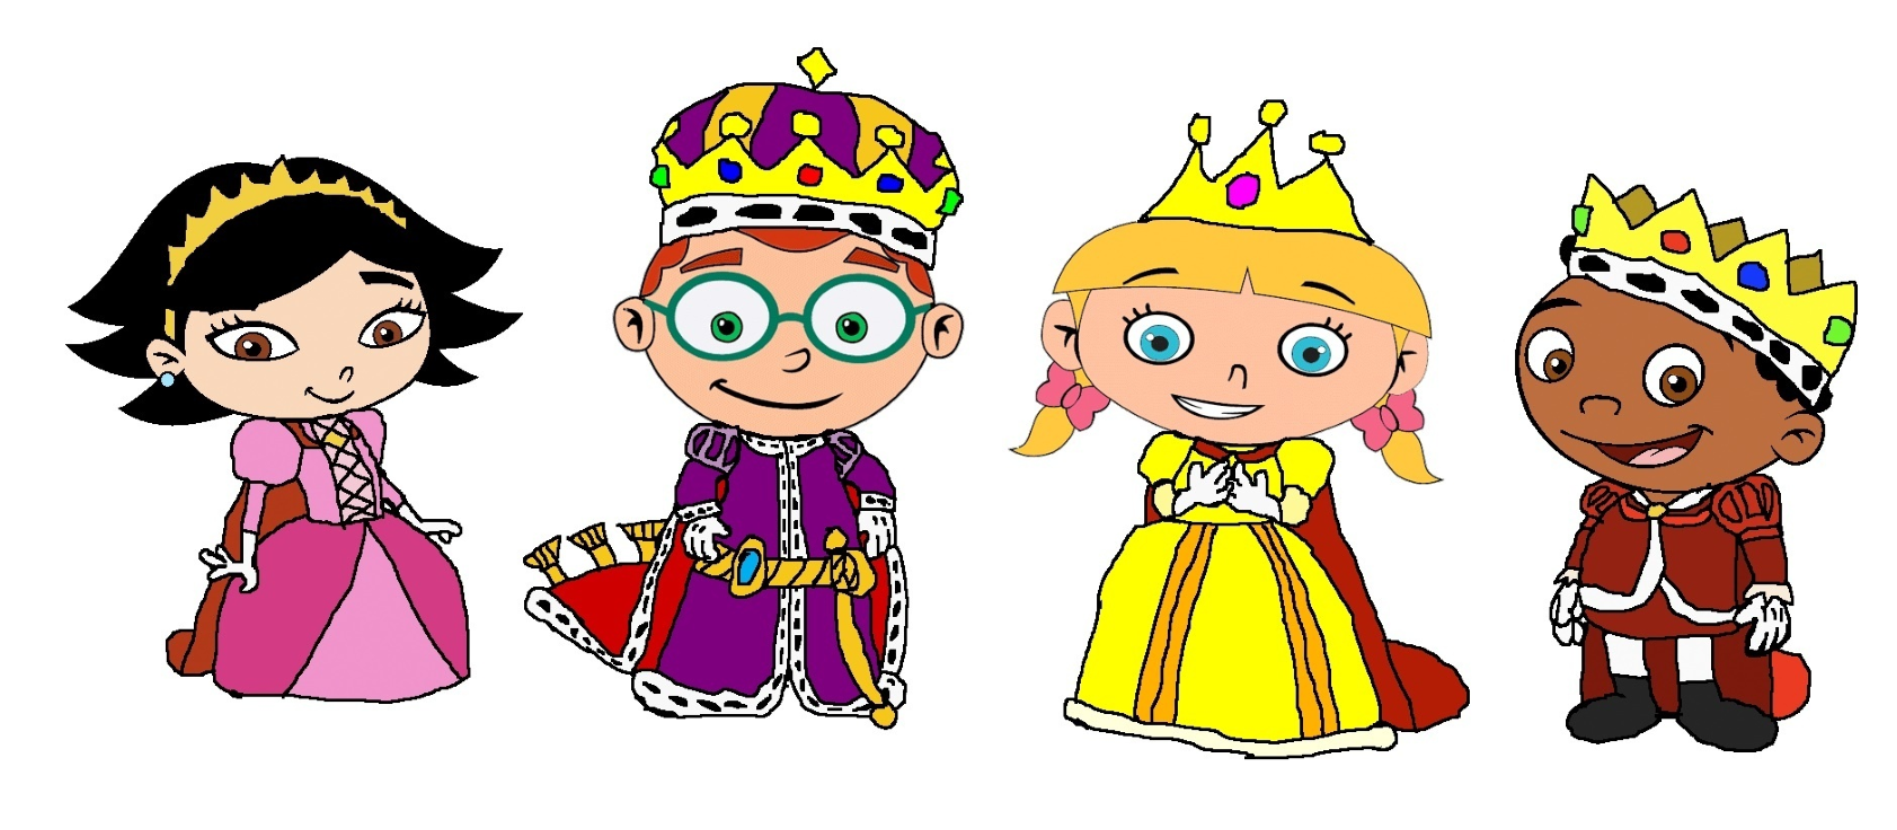 A king and queen clipart image transparent library Clipart Of King And Queen | timhangtot.net image transparent library